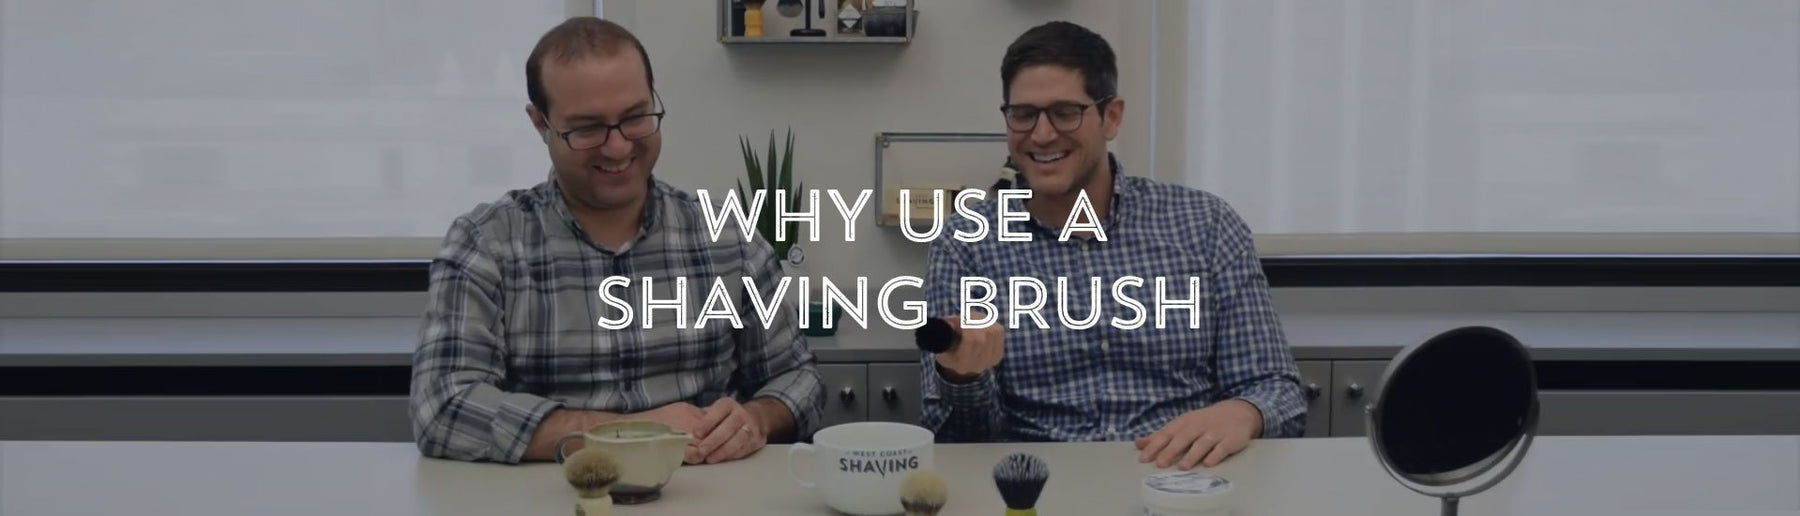 Why Use a Shaving Brush-West Coast Shaving